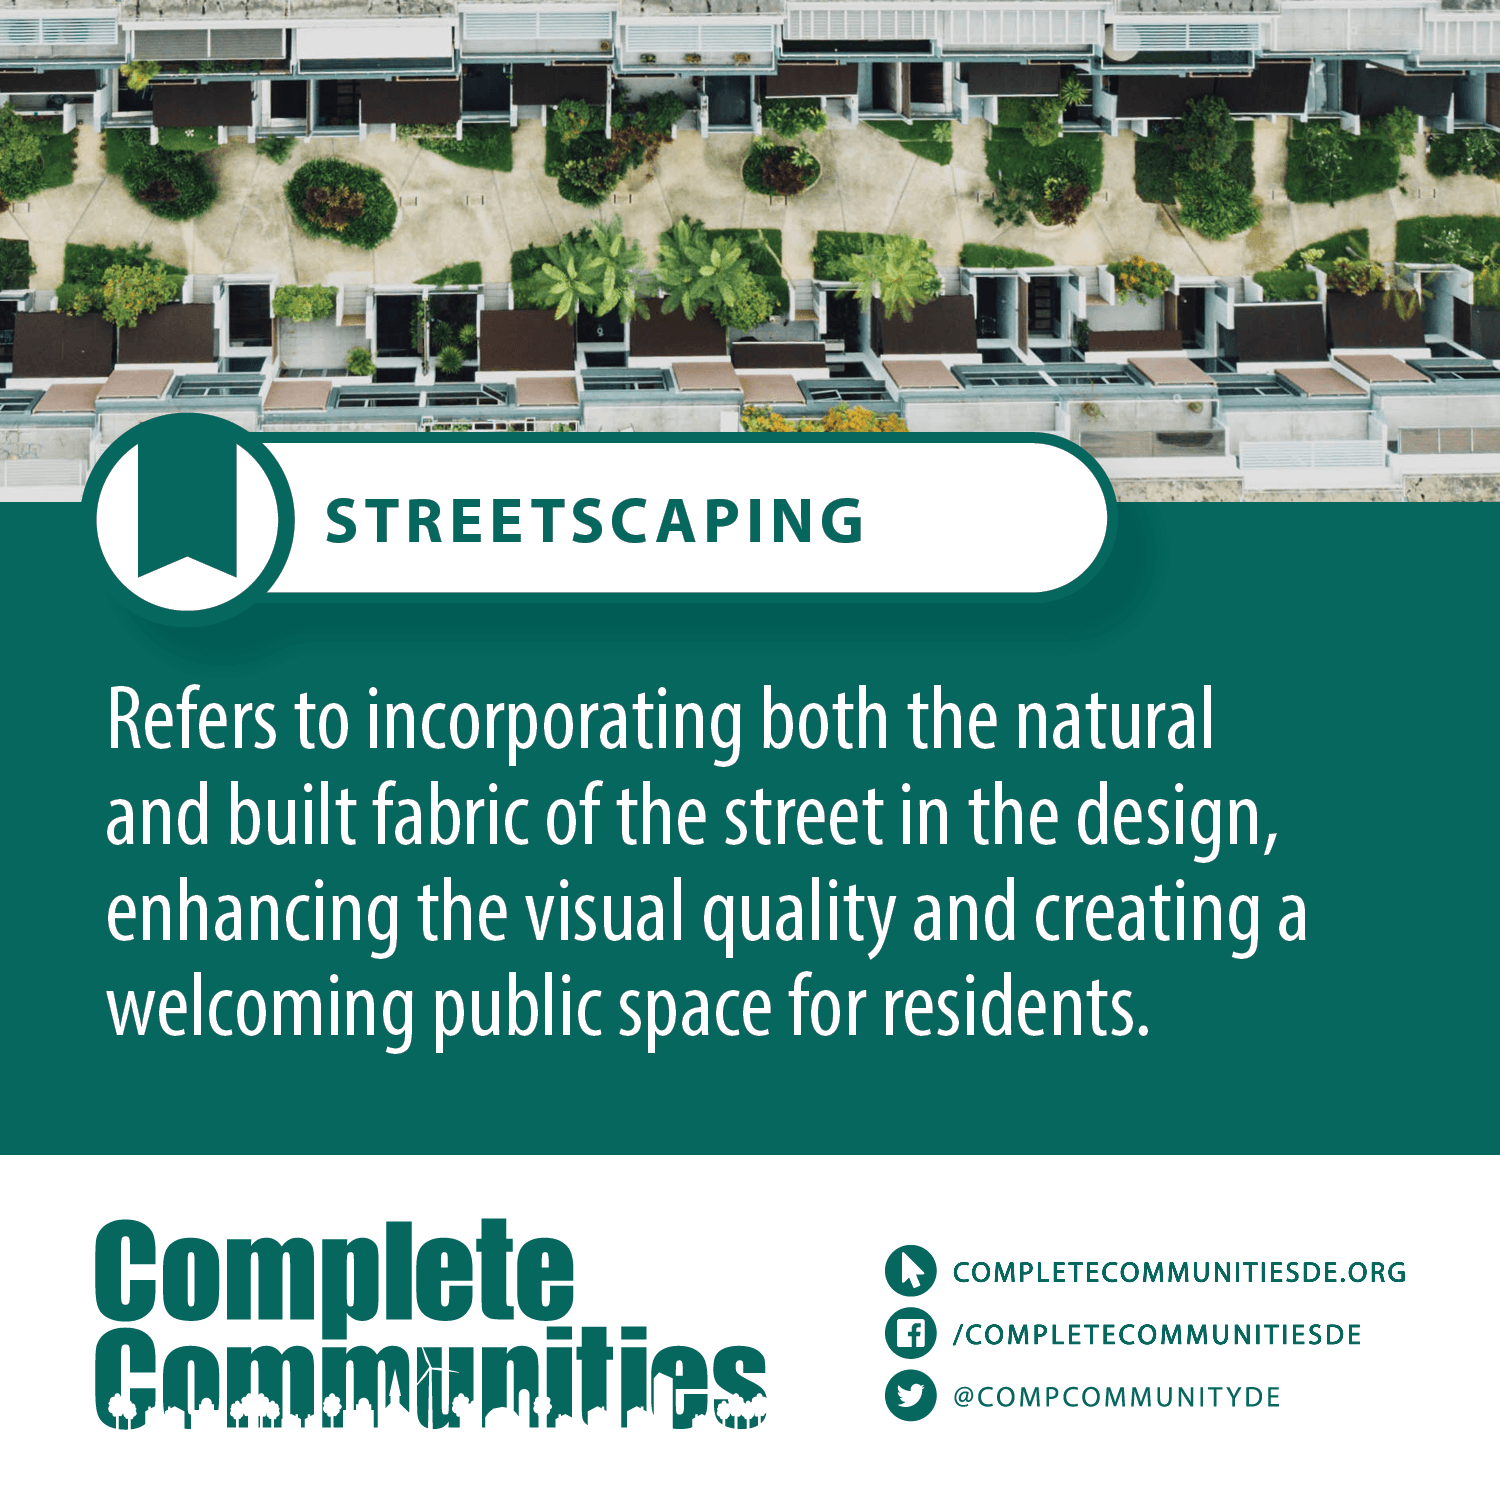 Streetscaping Refers to incorporating both the natural and built fabric of the street in the design, enhancing the visual quality and creating a welcoming public space for residents.